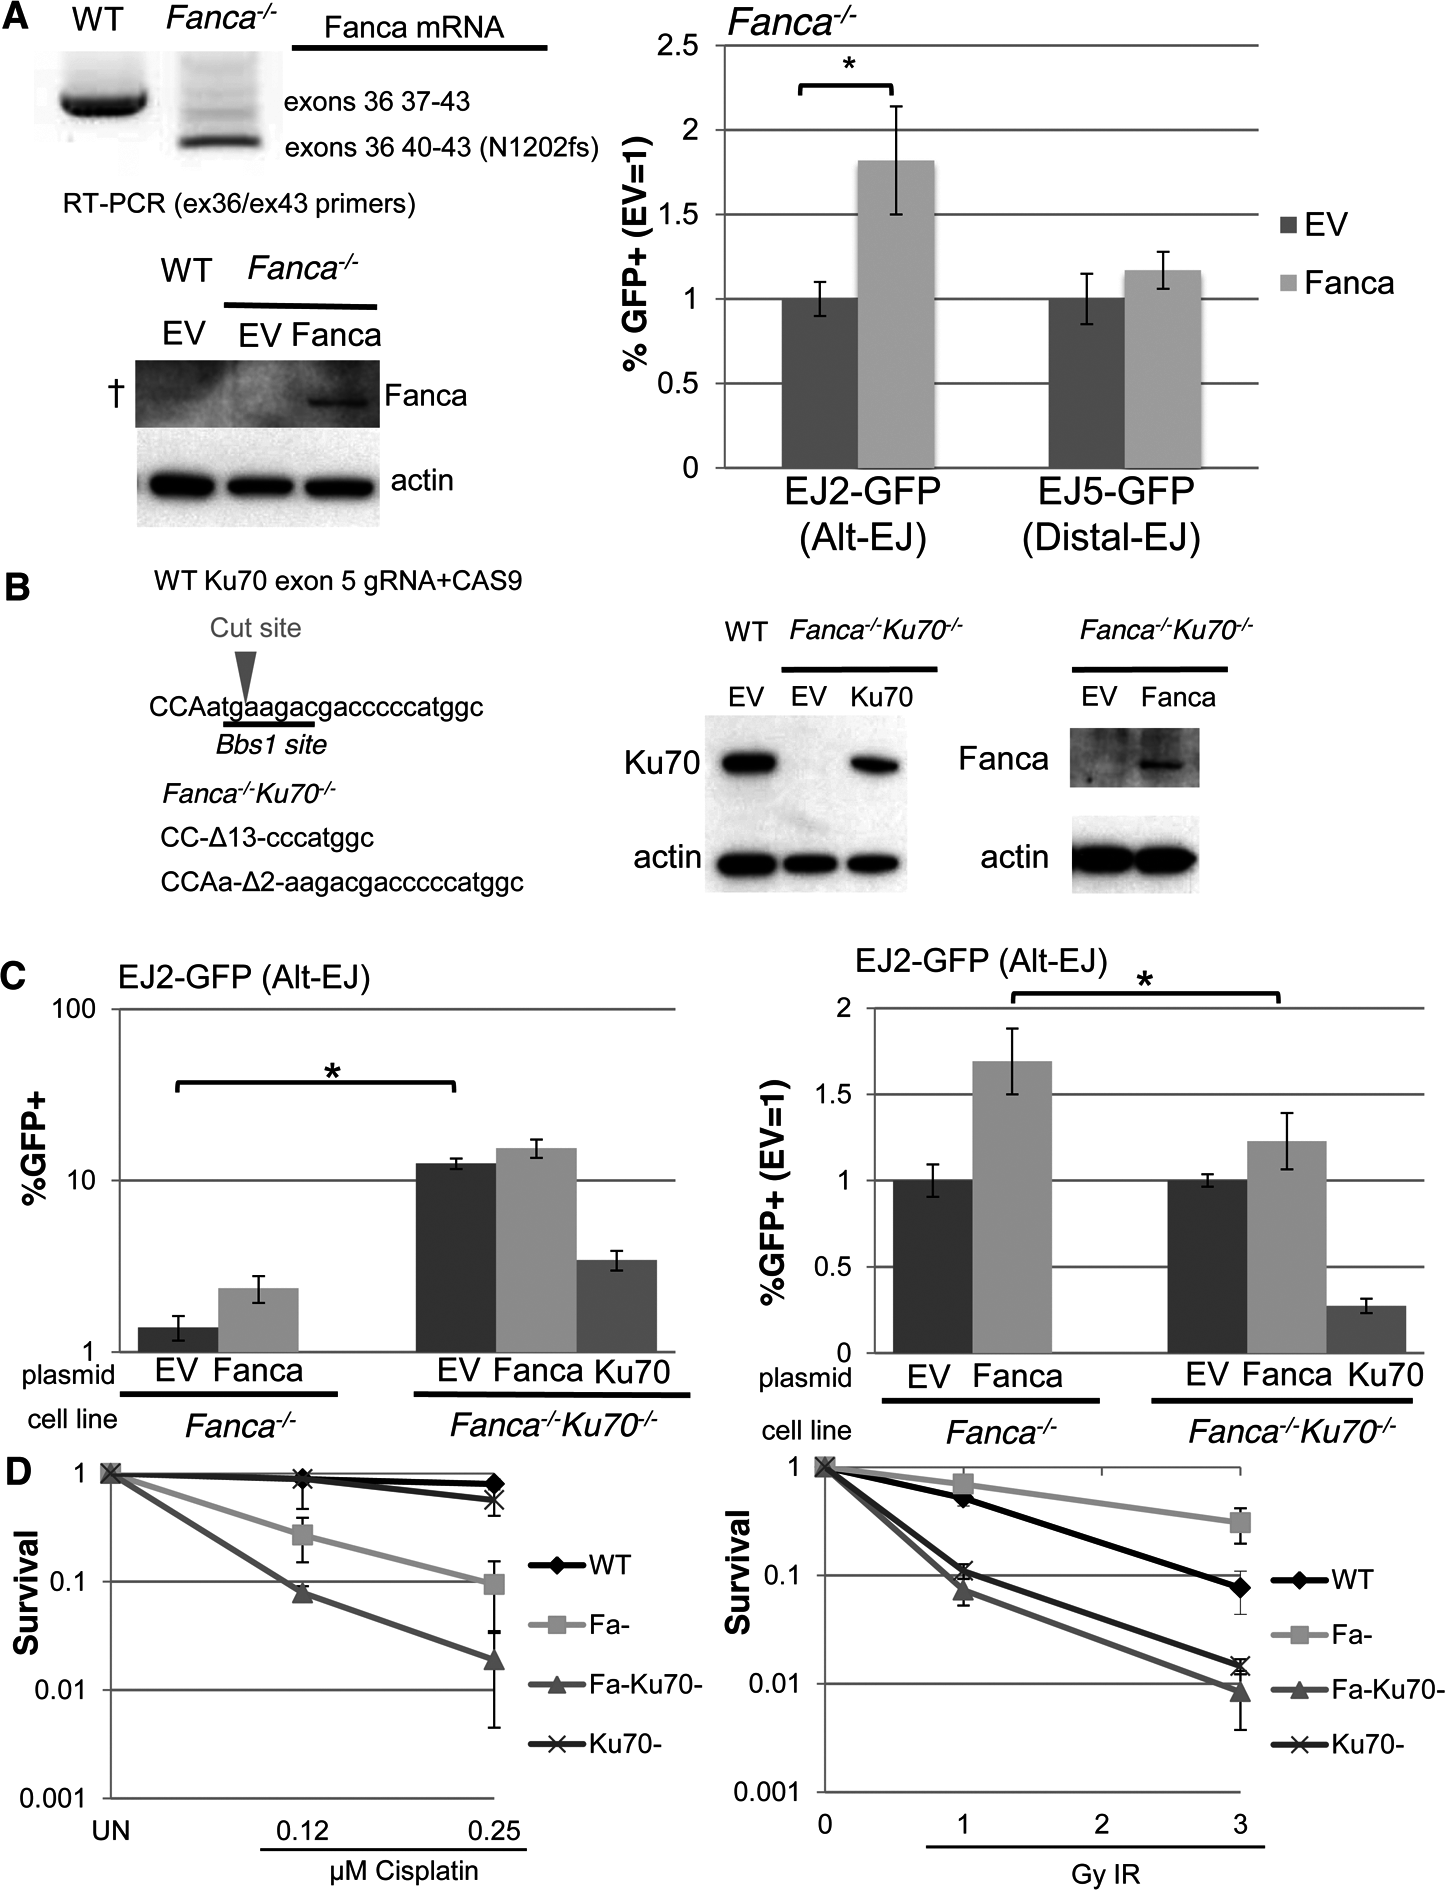 Loss of Ku70 can diminish the influence of Fanca on Alt-EJ, but not cisplatin sensitivity.